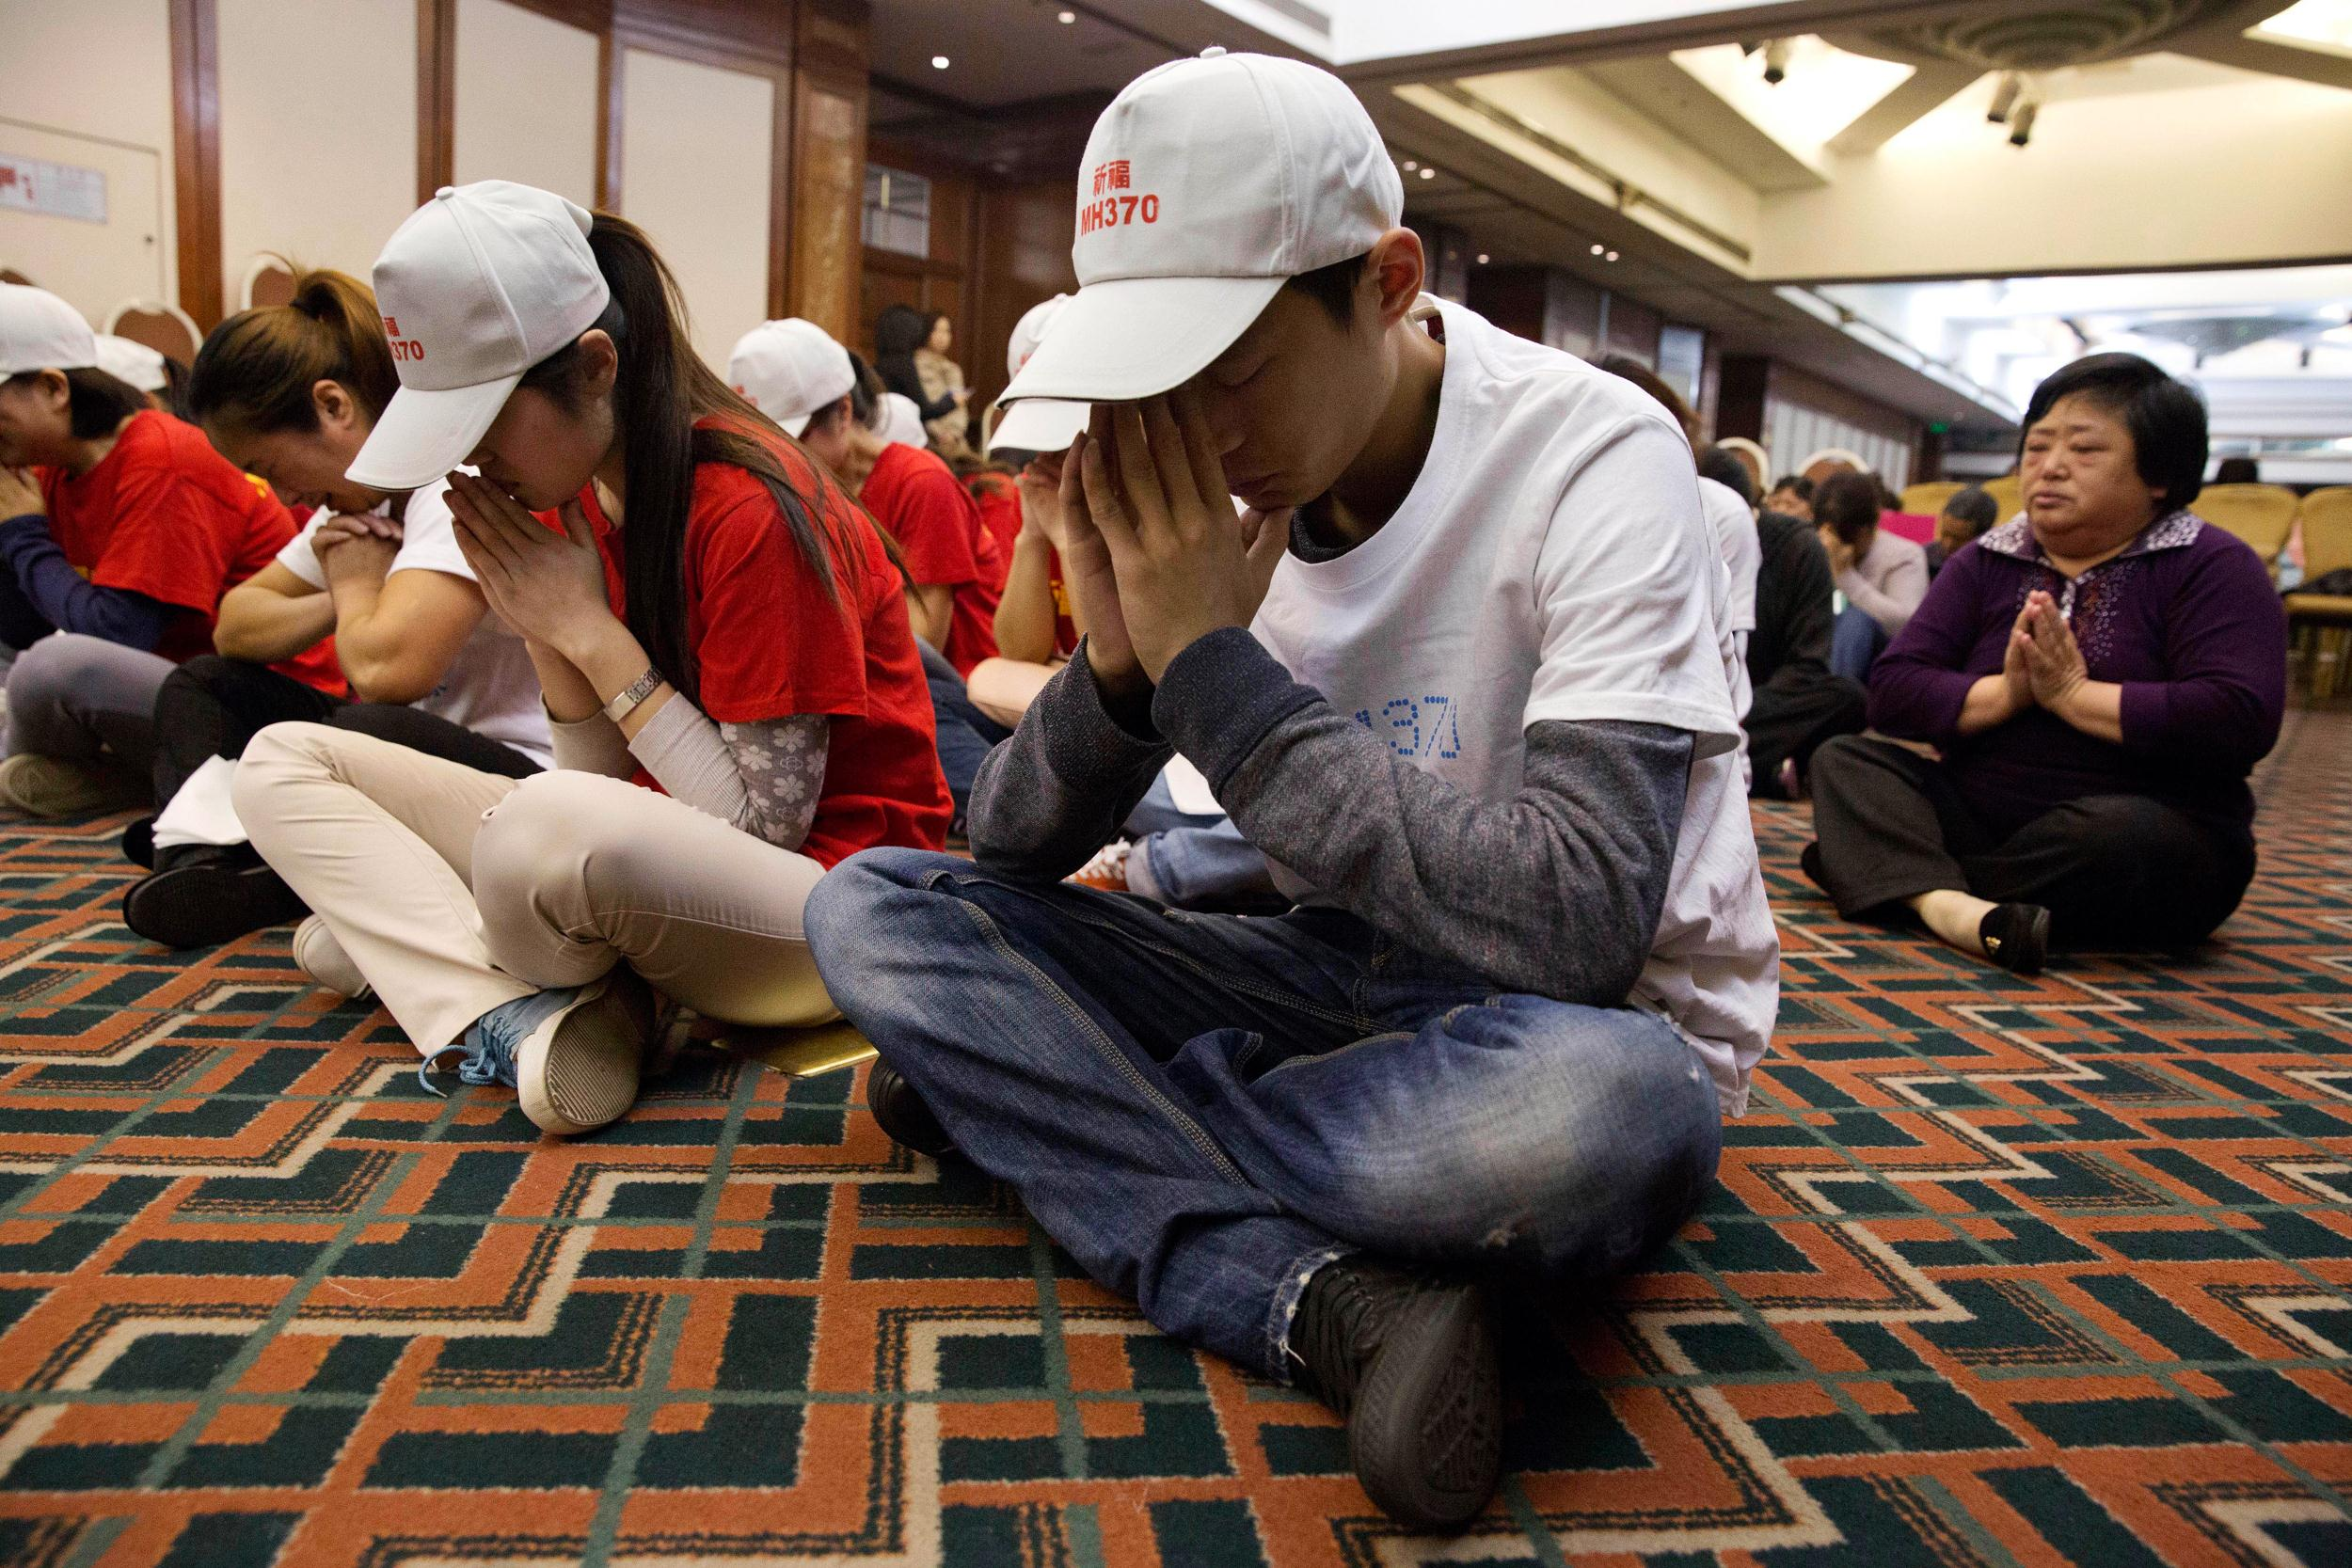 Image: Relatives of Chinese passengers on board the Malaysia Airlines Flight 370 pray at a hotel conference room in Beijing